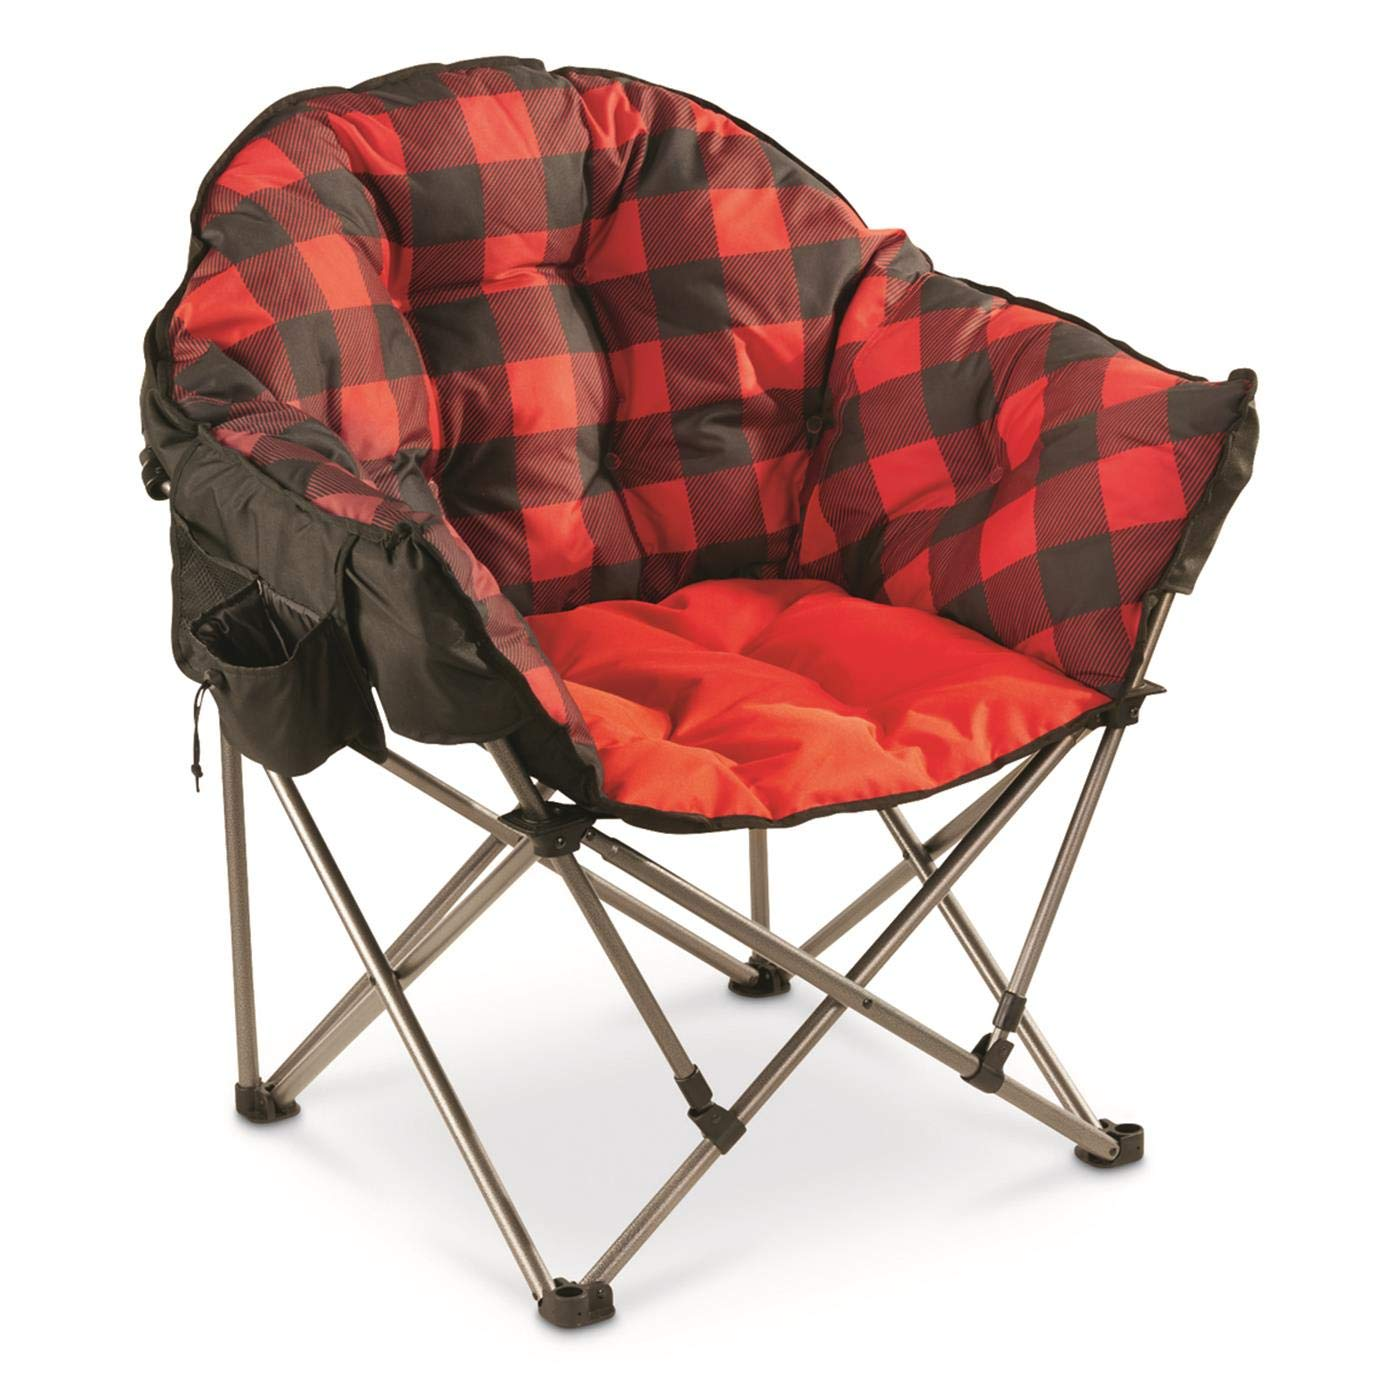 Guide Gear Oversized Club Camp Chair, 500-lb. Capacity, Red Plaid by Guide Gear